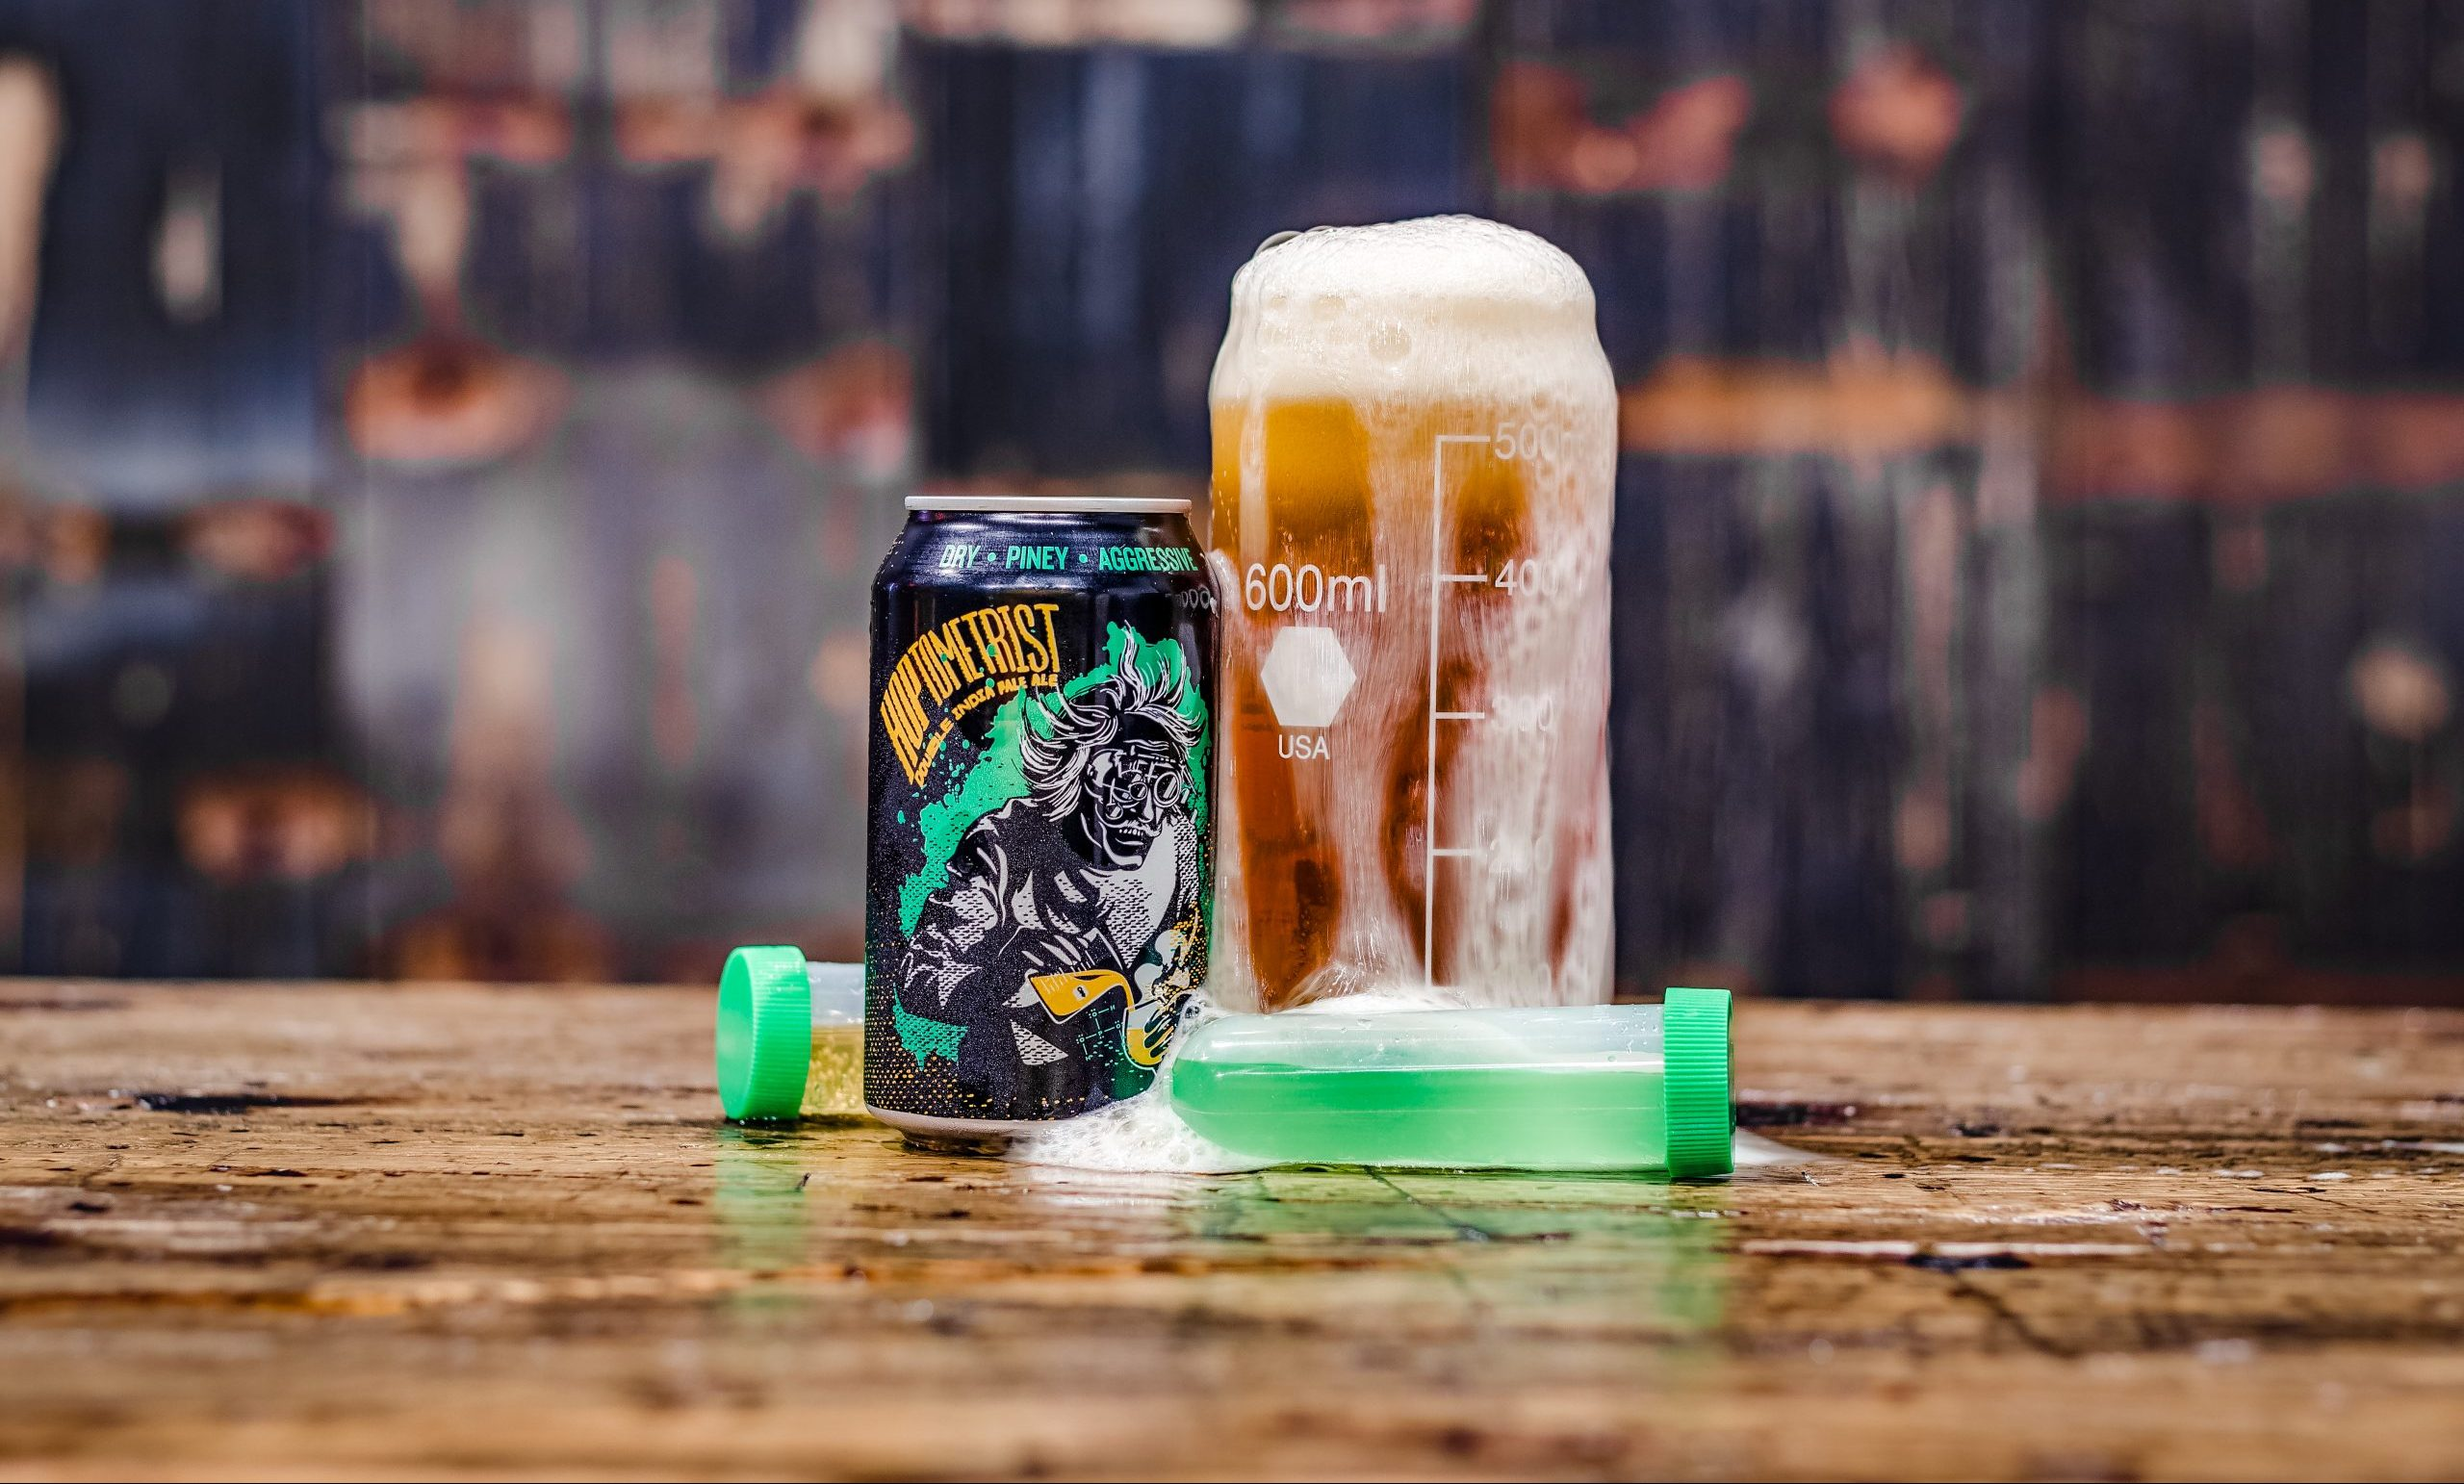 https://roughtailbeer.com/wp-content/uploads/2021/05/Roughtail-Shoot_4-30-21-24-scaled-e1620183421355.jpg